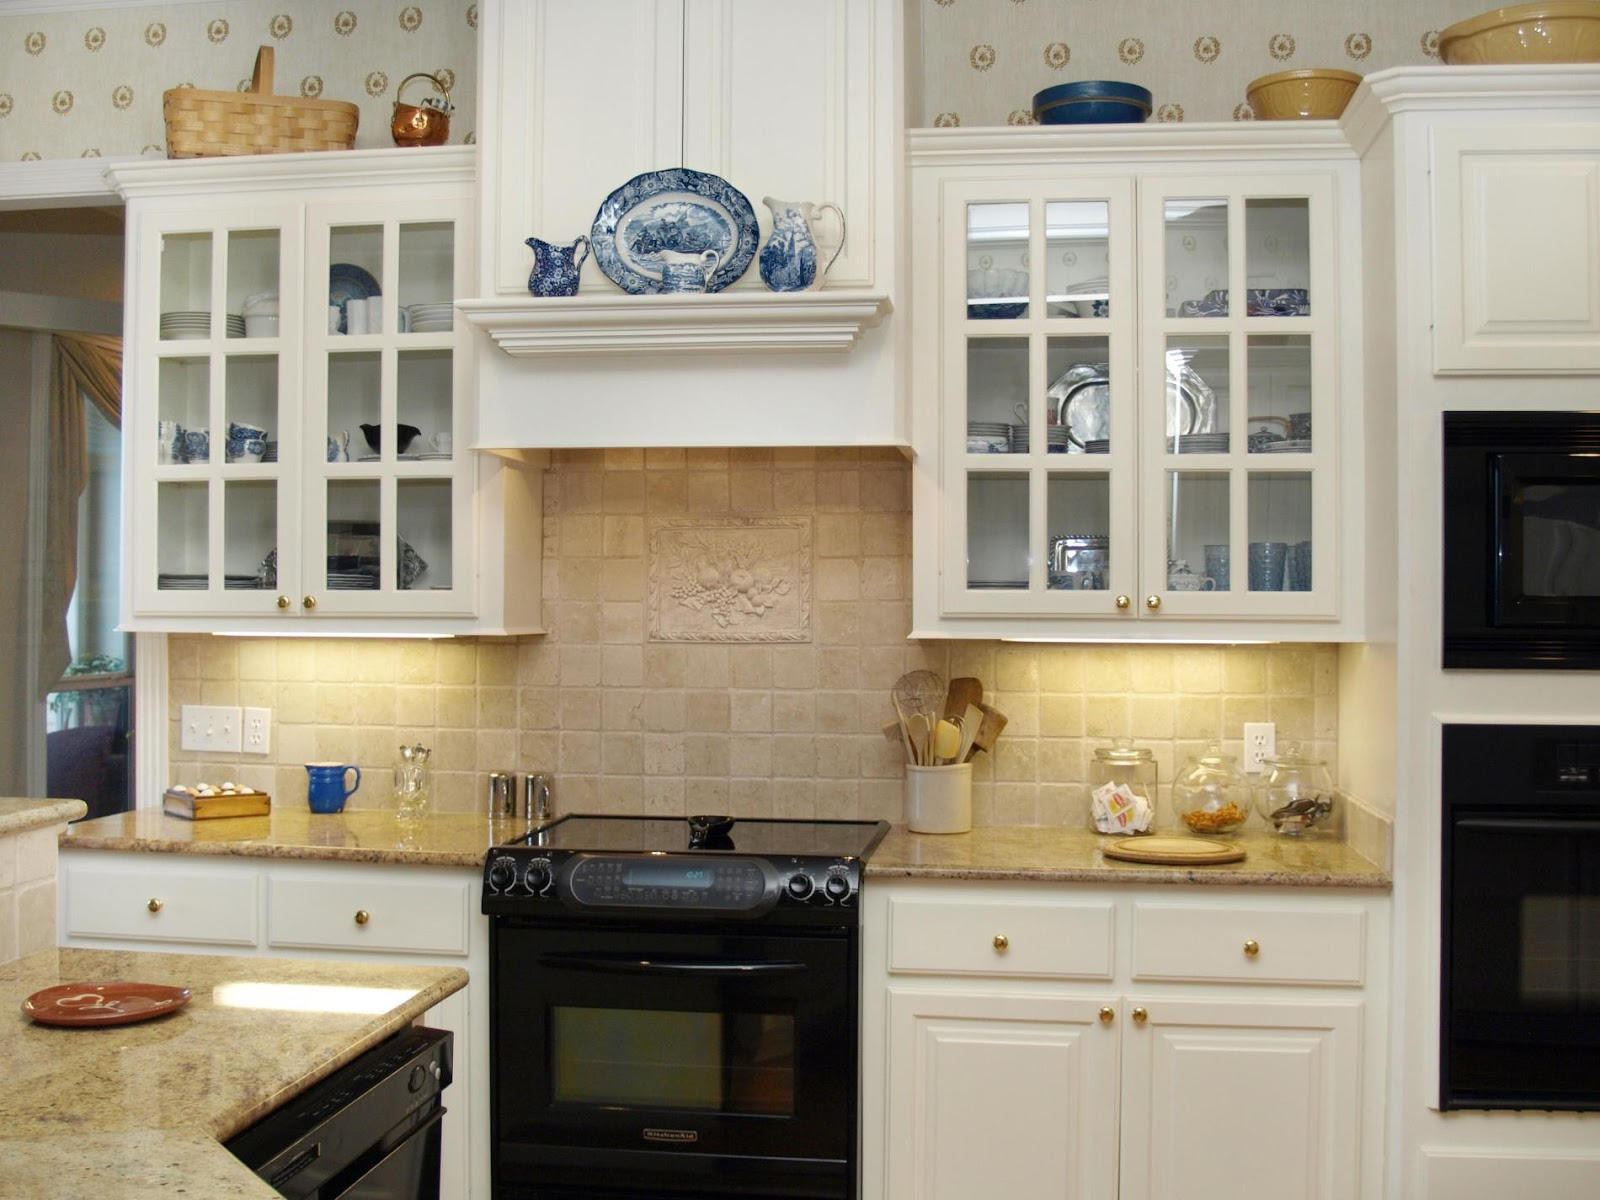 Kitchen shelves decoration dream house experience for Kitchen room decoration